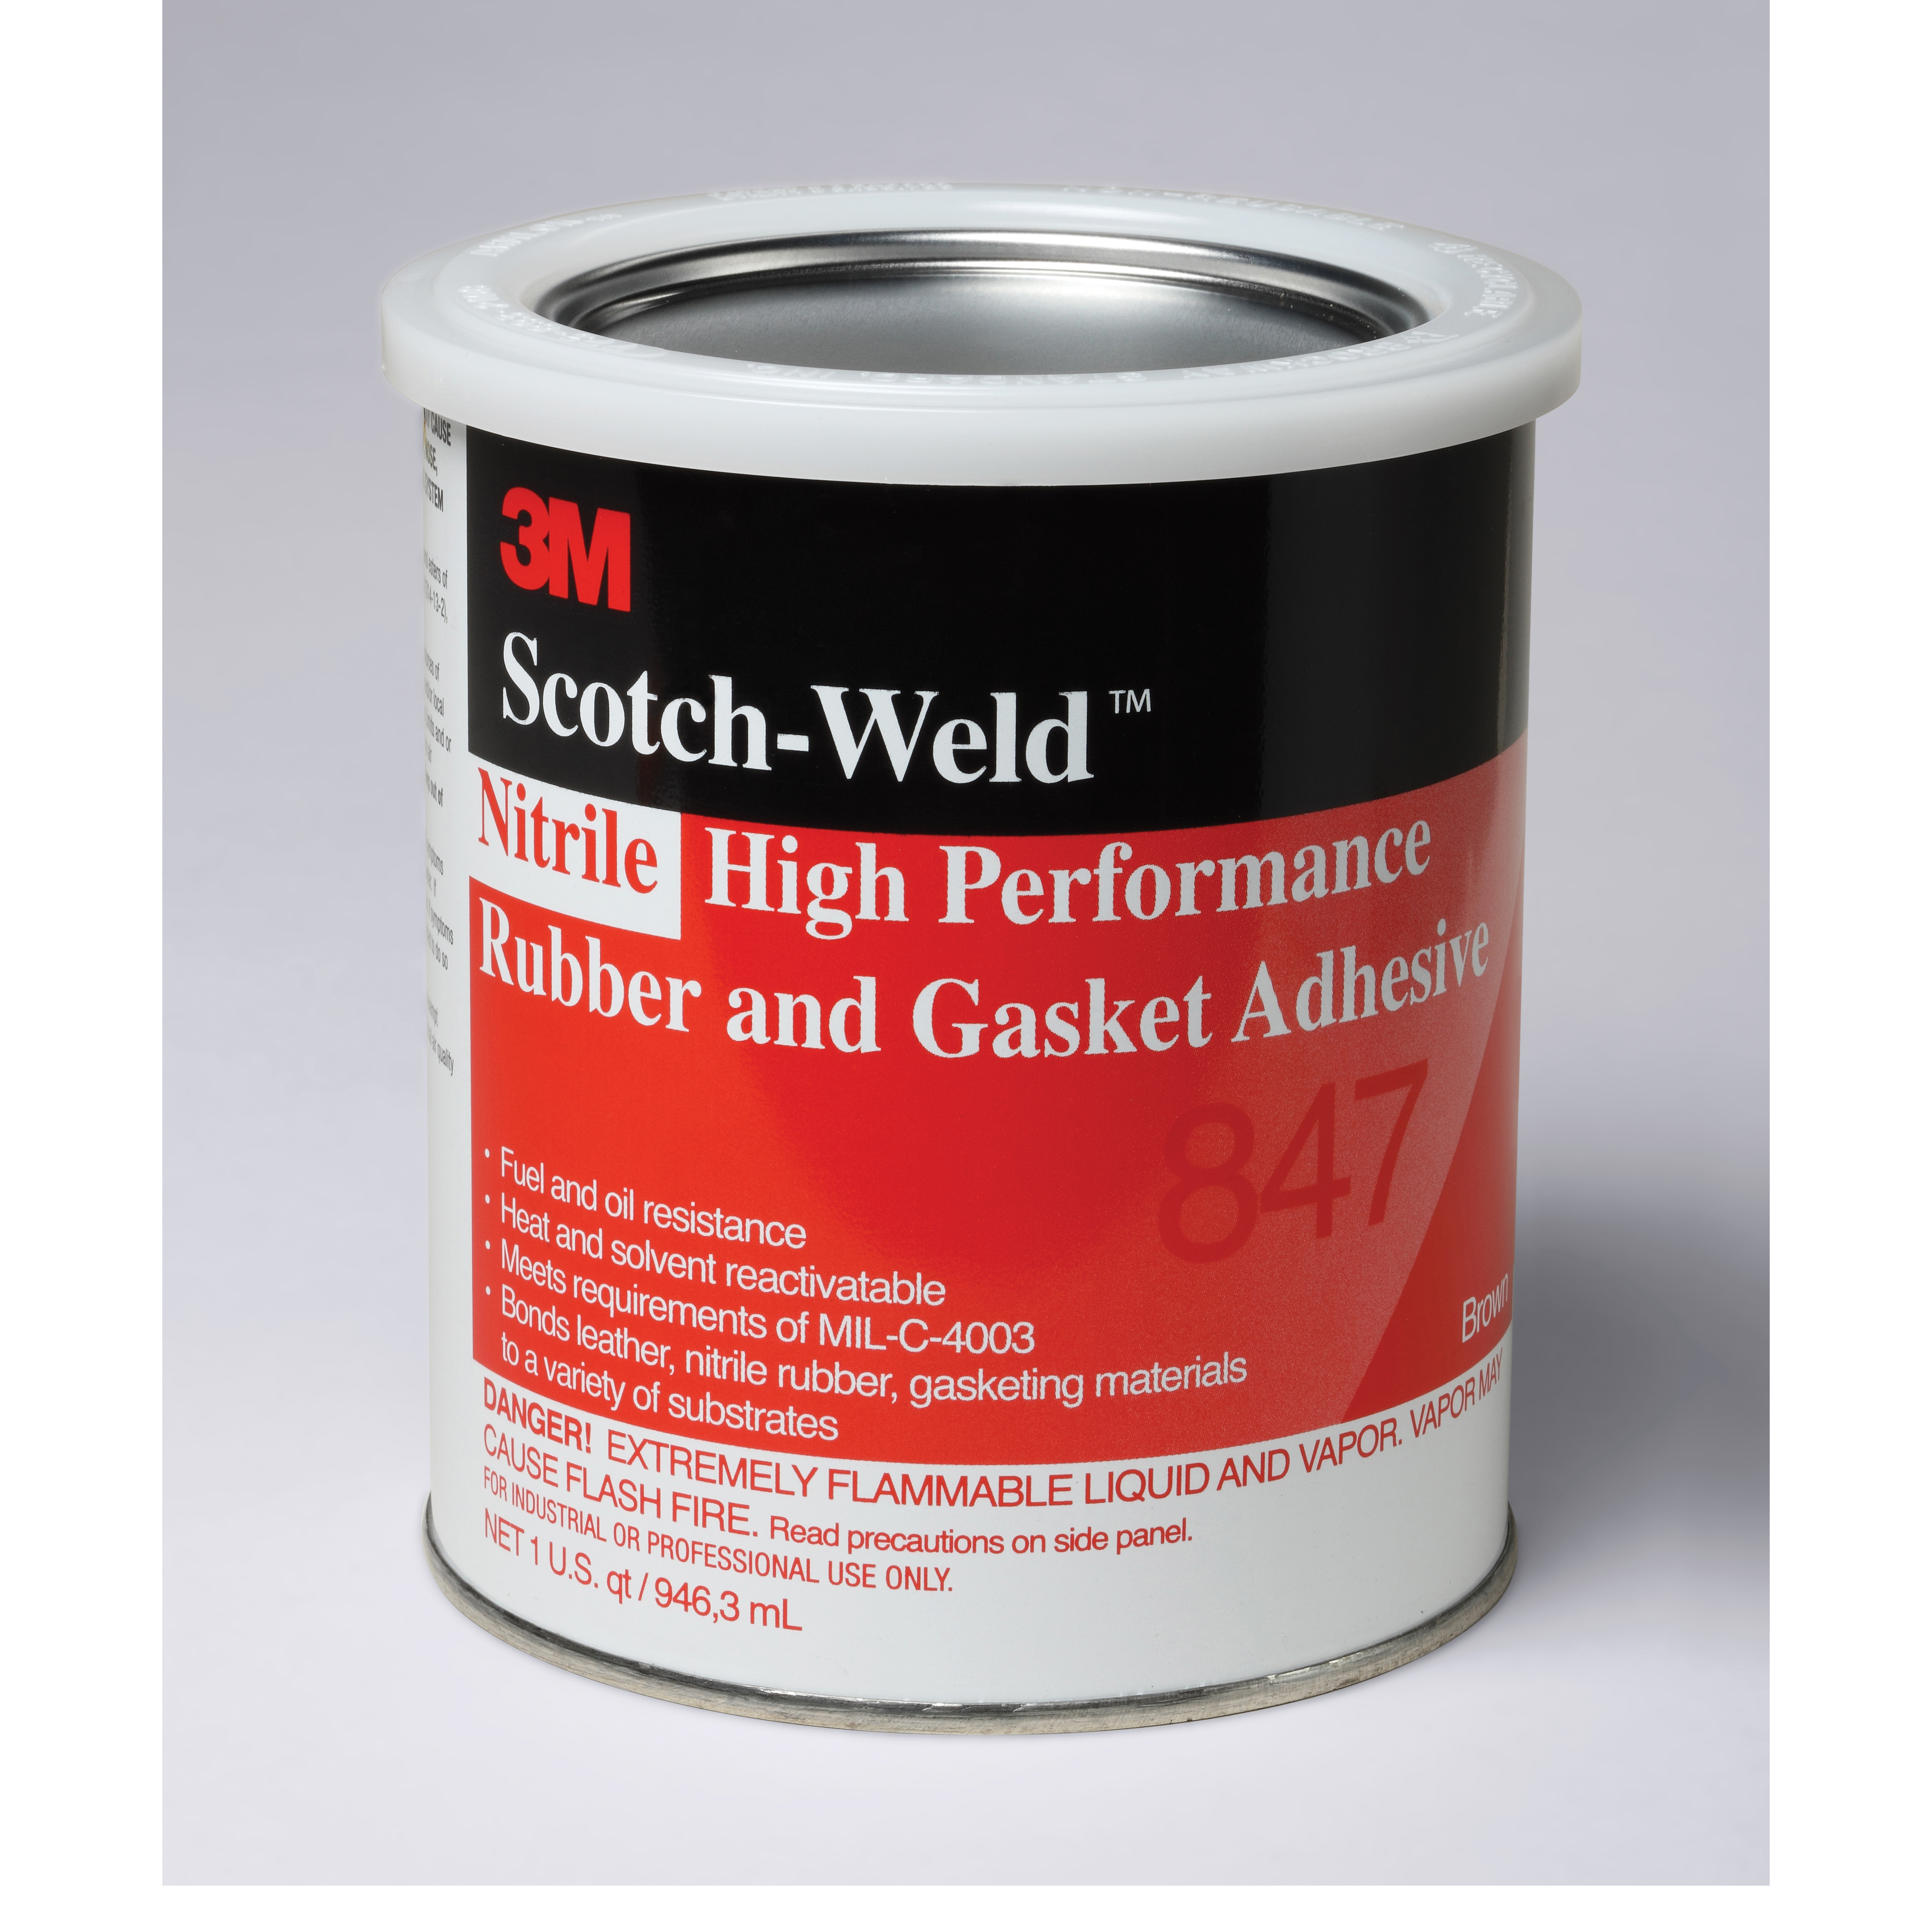 Scotch-Weld™ 021200-19723 847 High Performance Rubber and Gasket